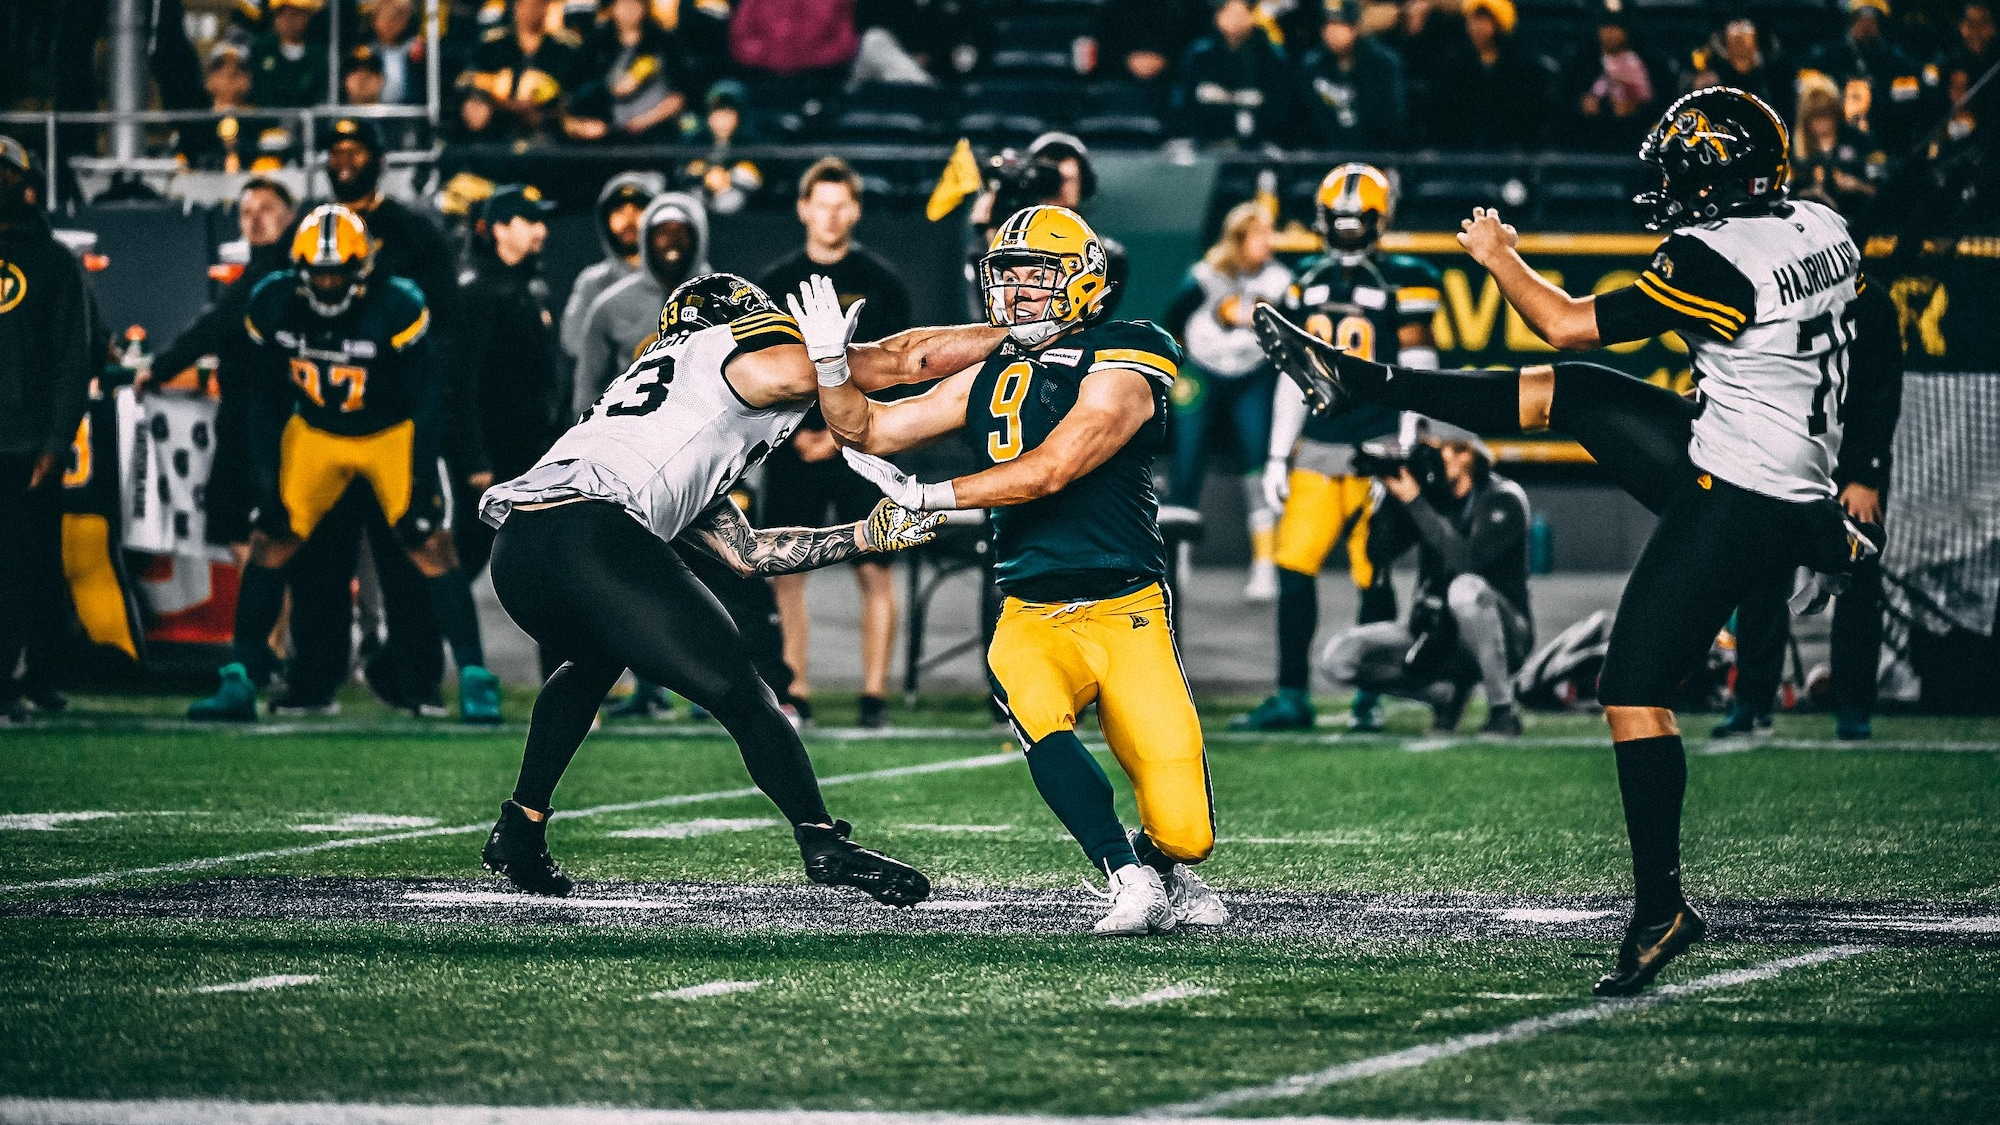 Mathieu Betts court vers le botteur de dégagement des Tiger-Cats de Hamilton pendant un match.